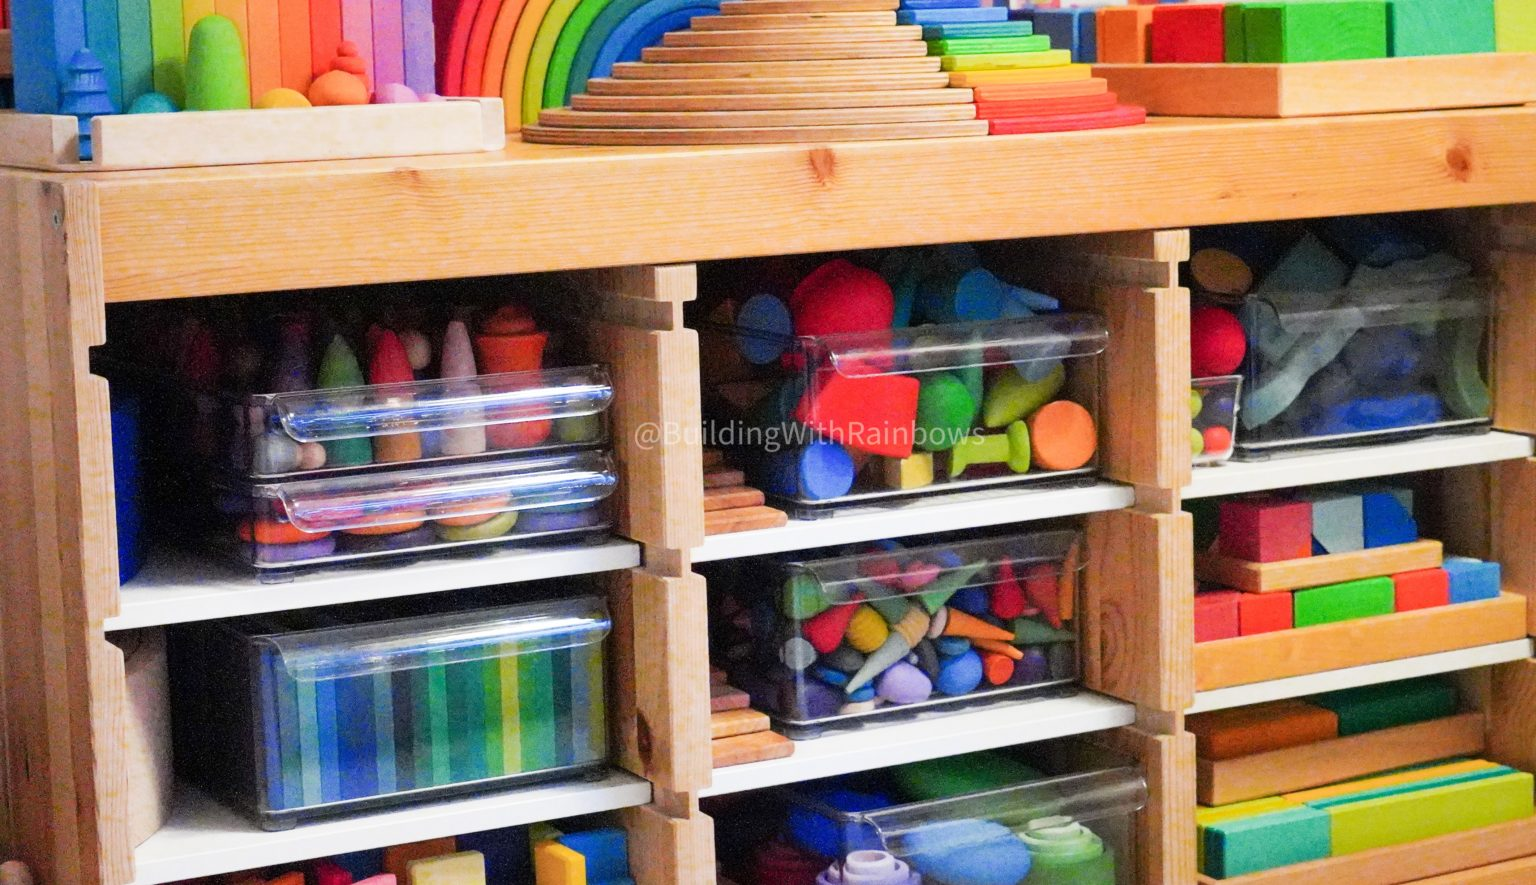 building with rainbows wooden toys